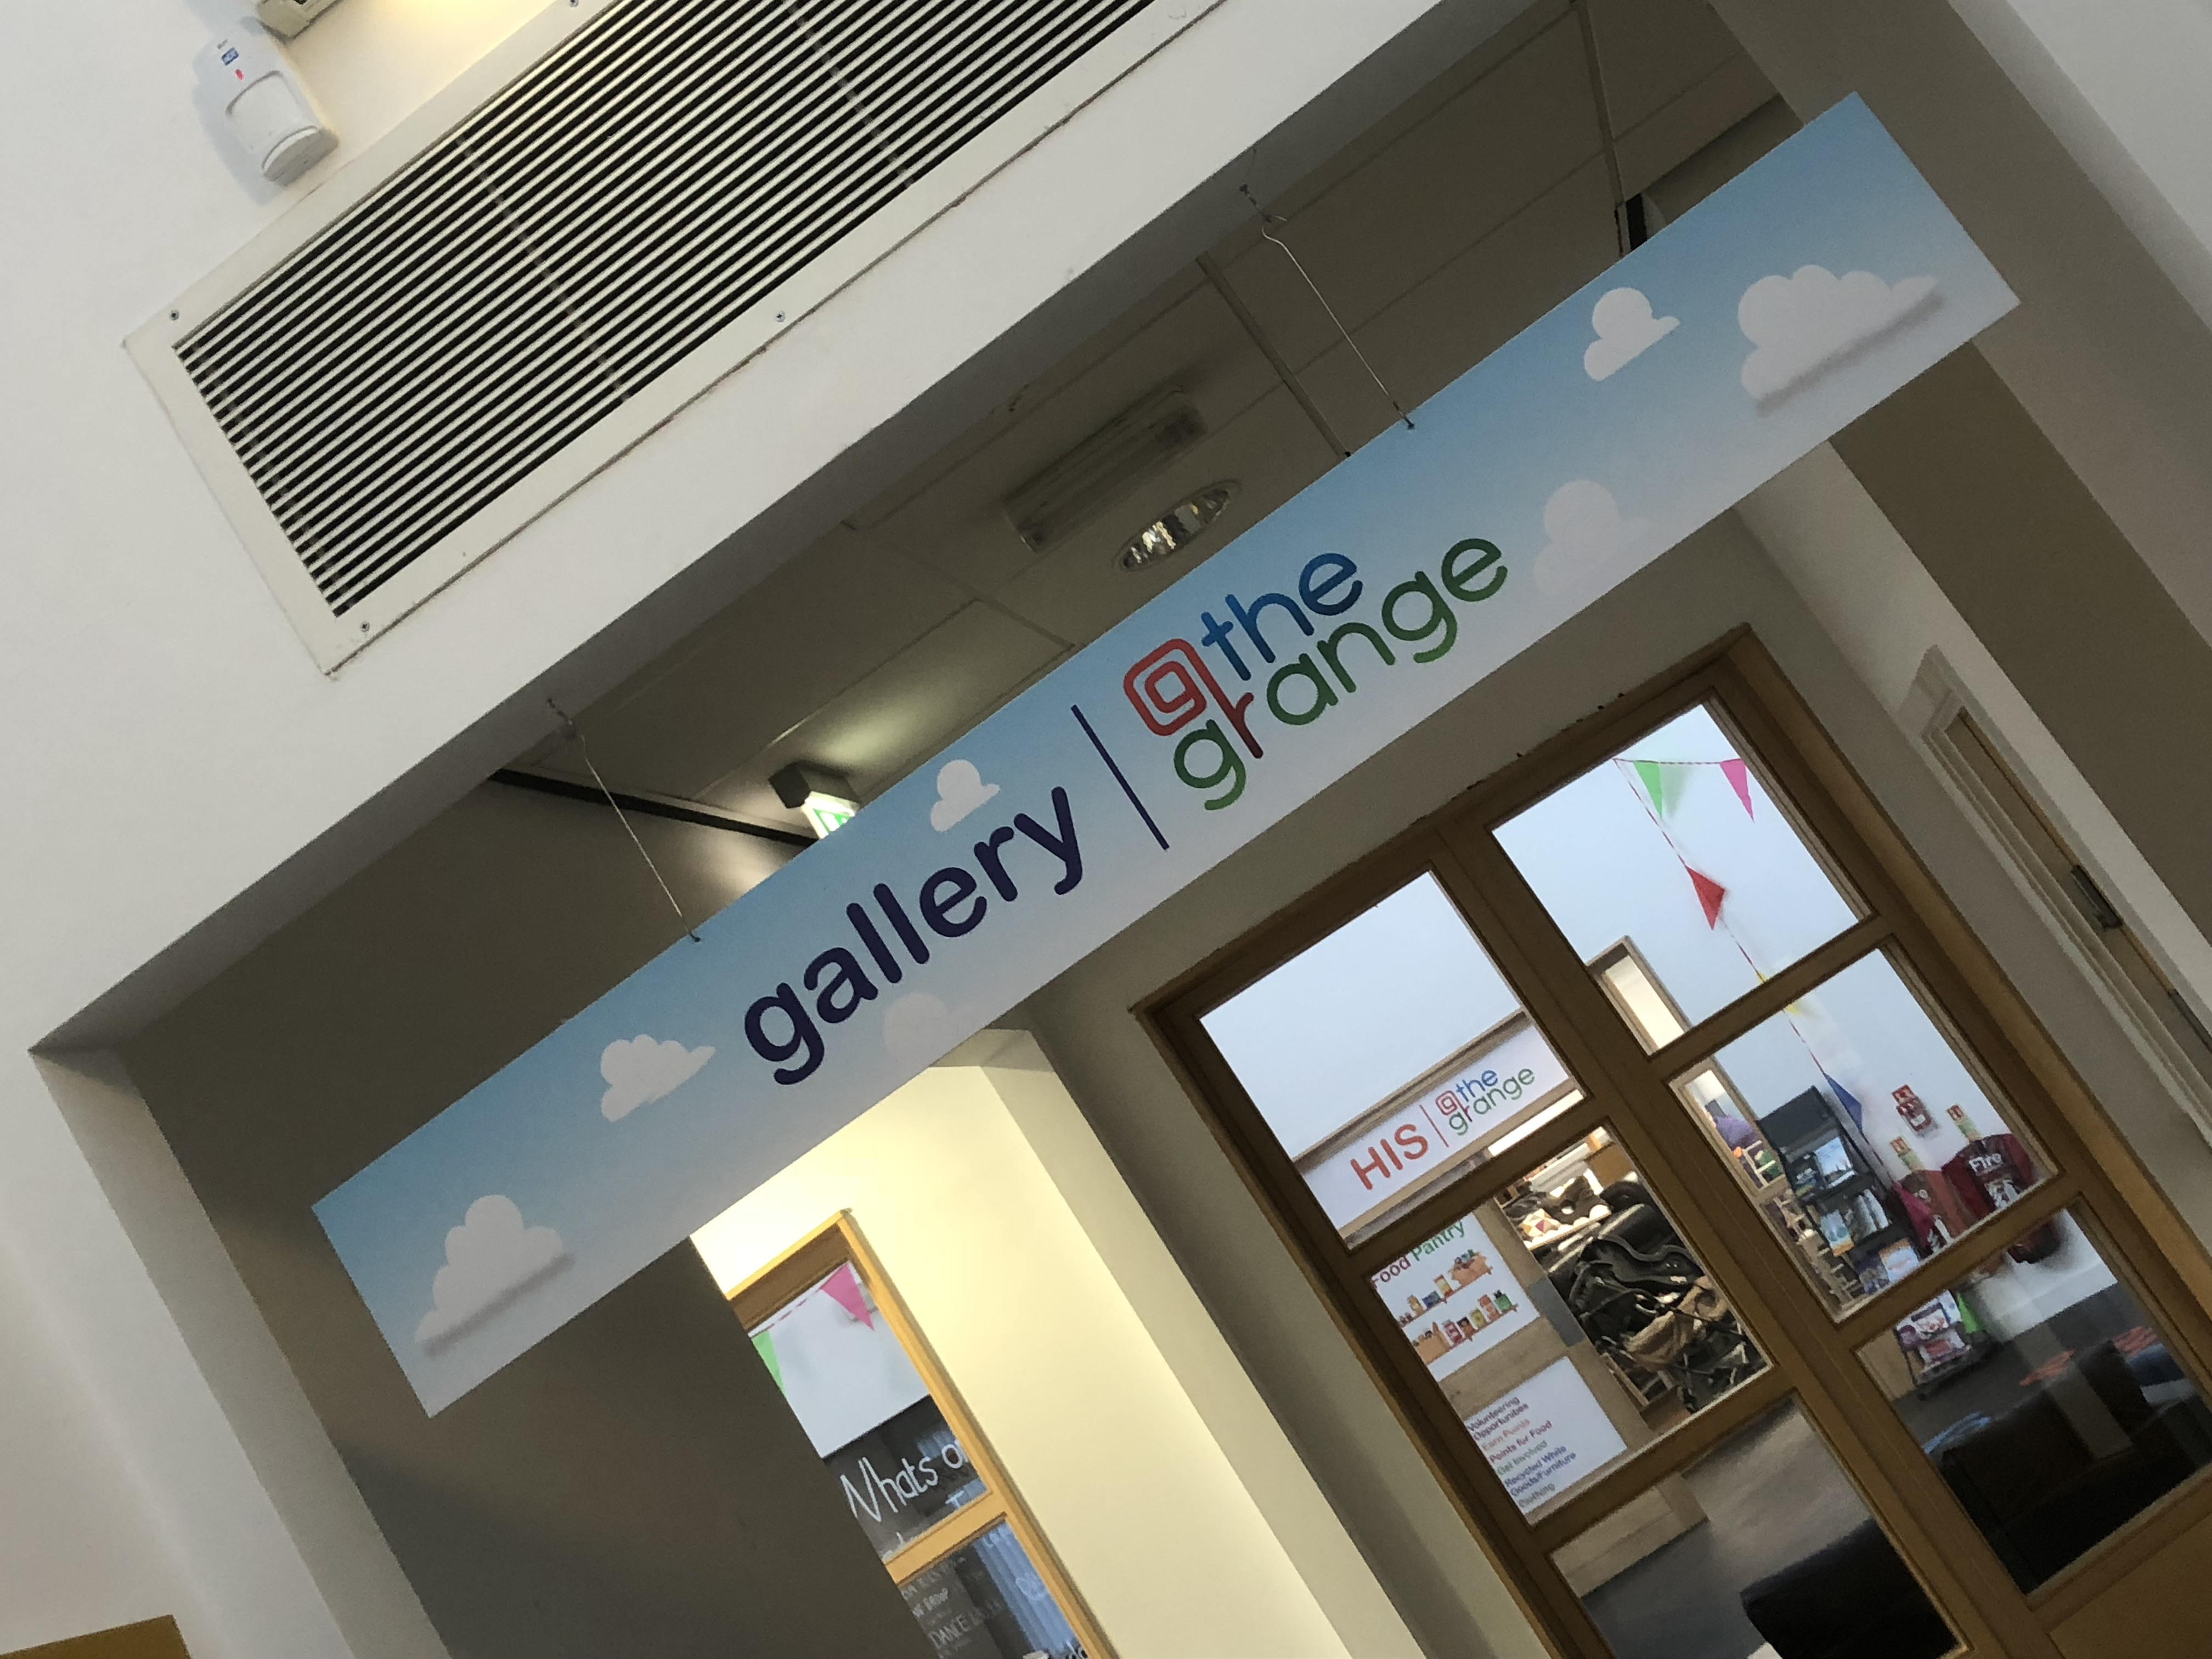 Gallery The Grange Signage Wall Graphics